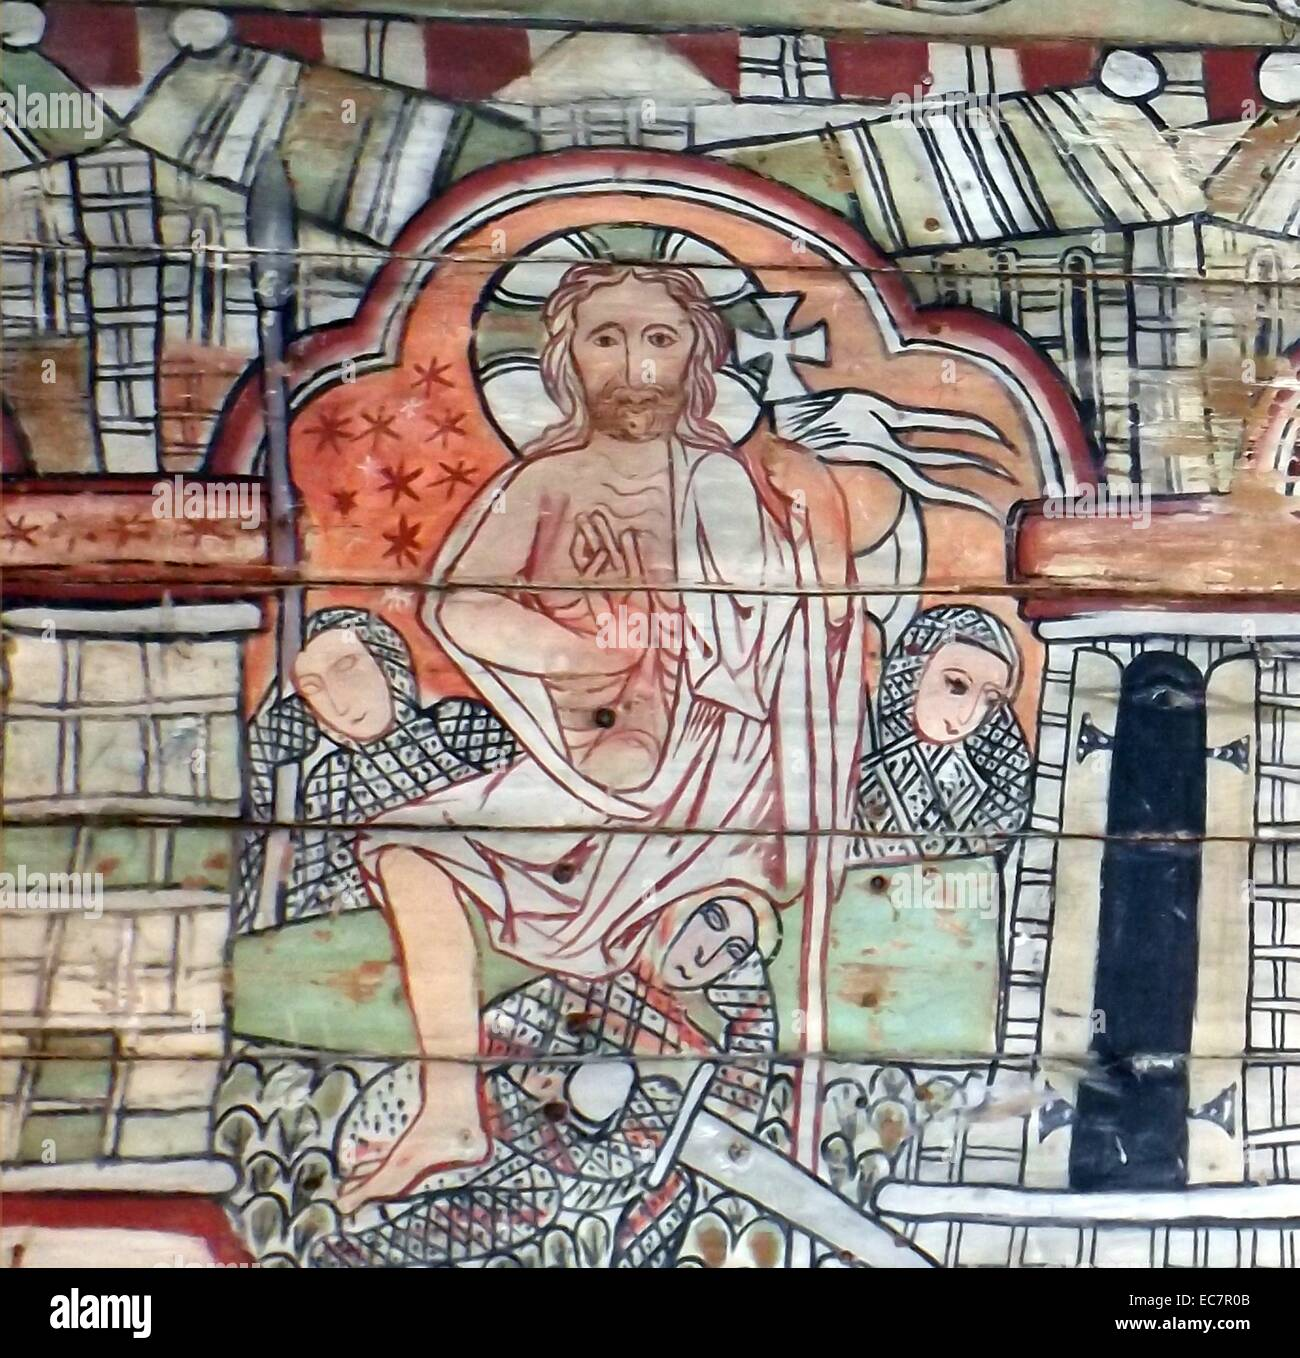 The ceiling panels preserved from a Norwegian Church dating to 1200 AD. Resurrection of Jesus is shown - Stock Image